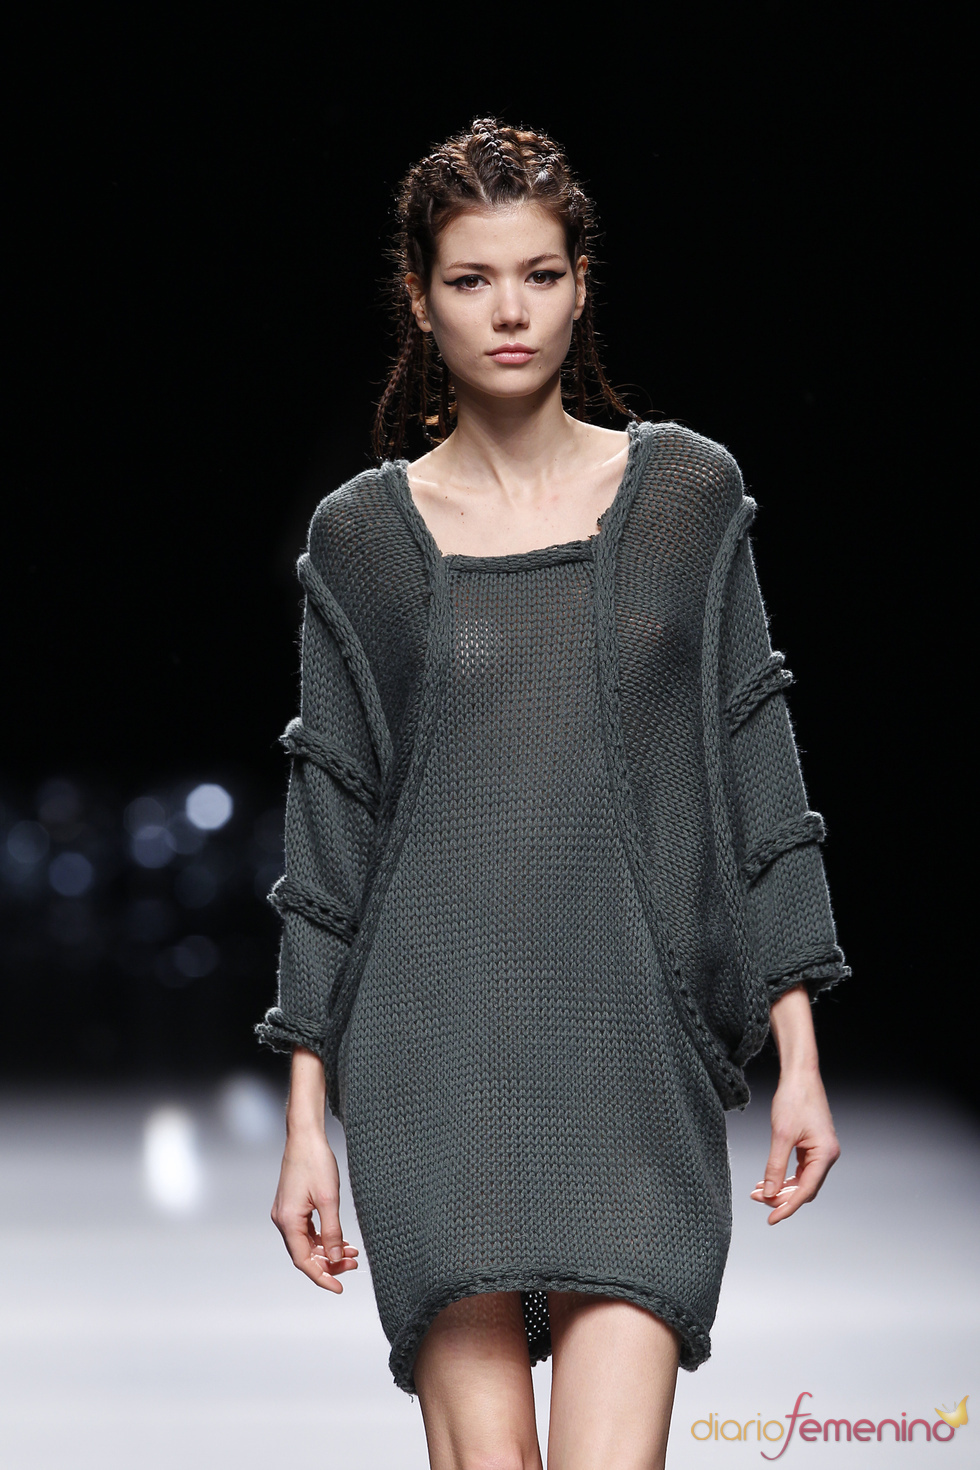 Madrid Fashion Week 2010: José Miró